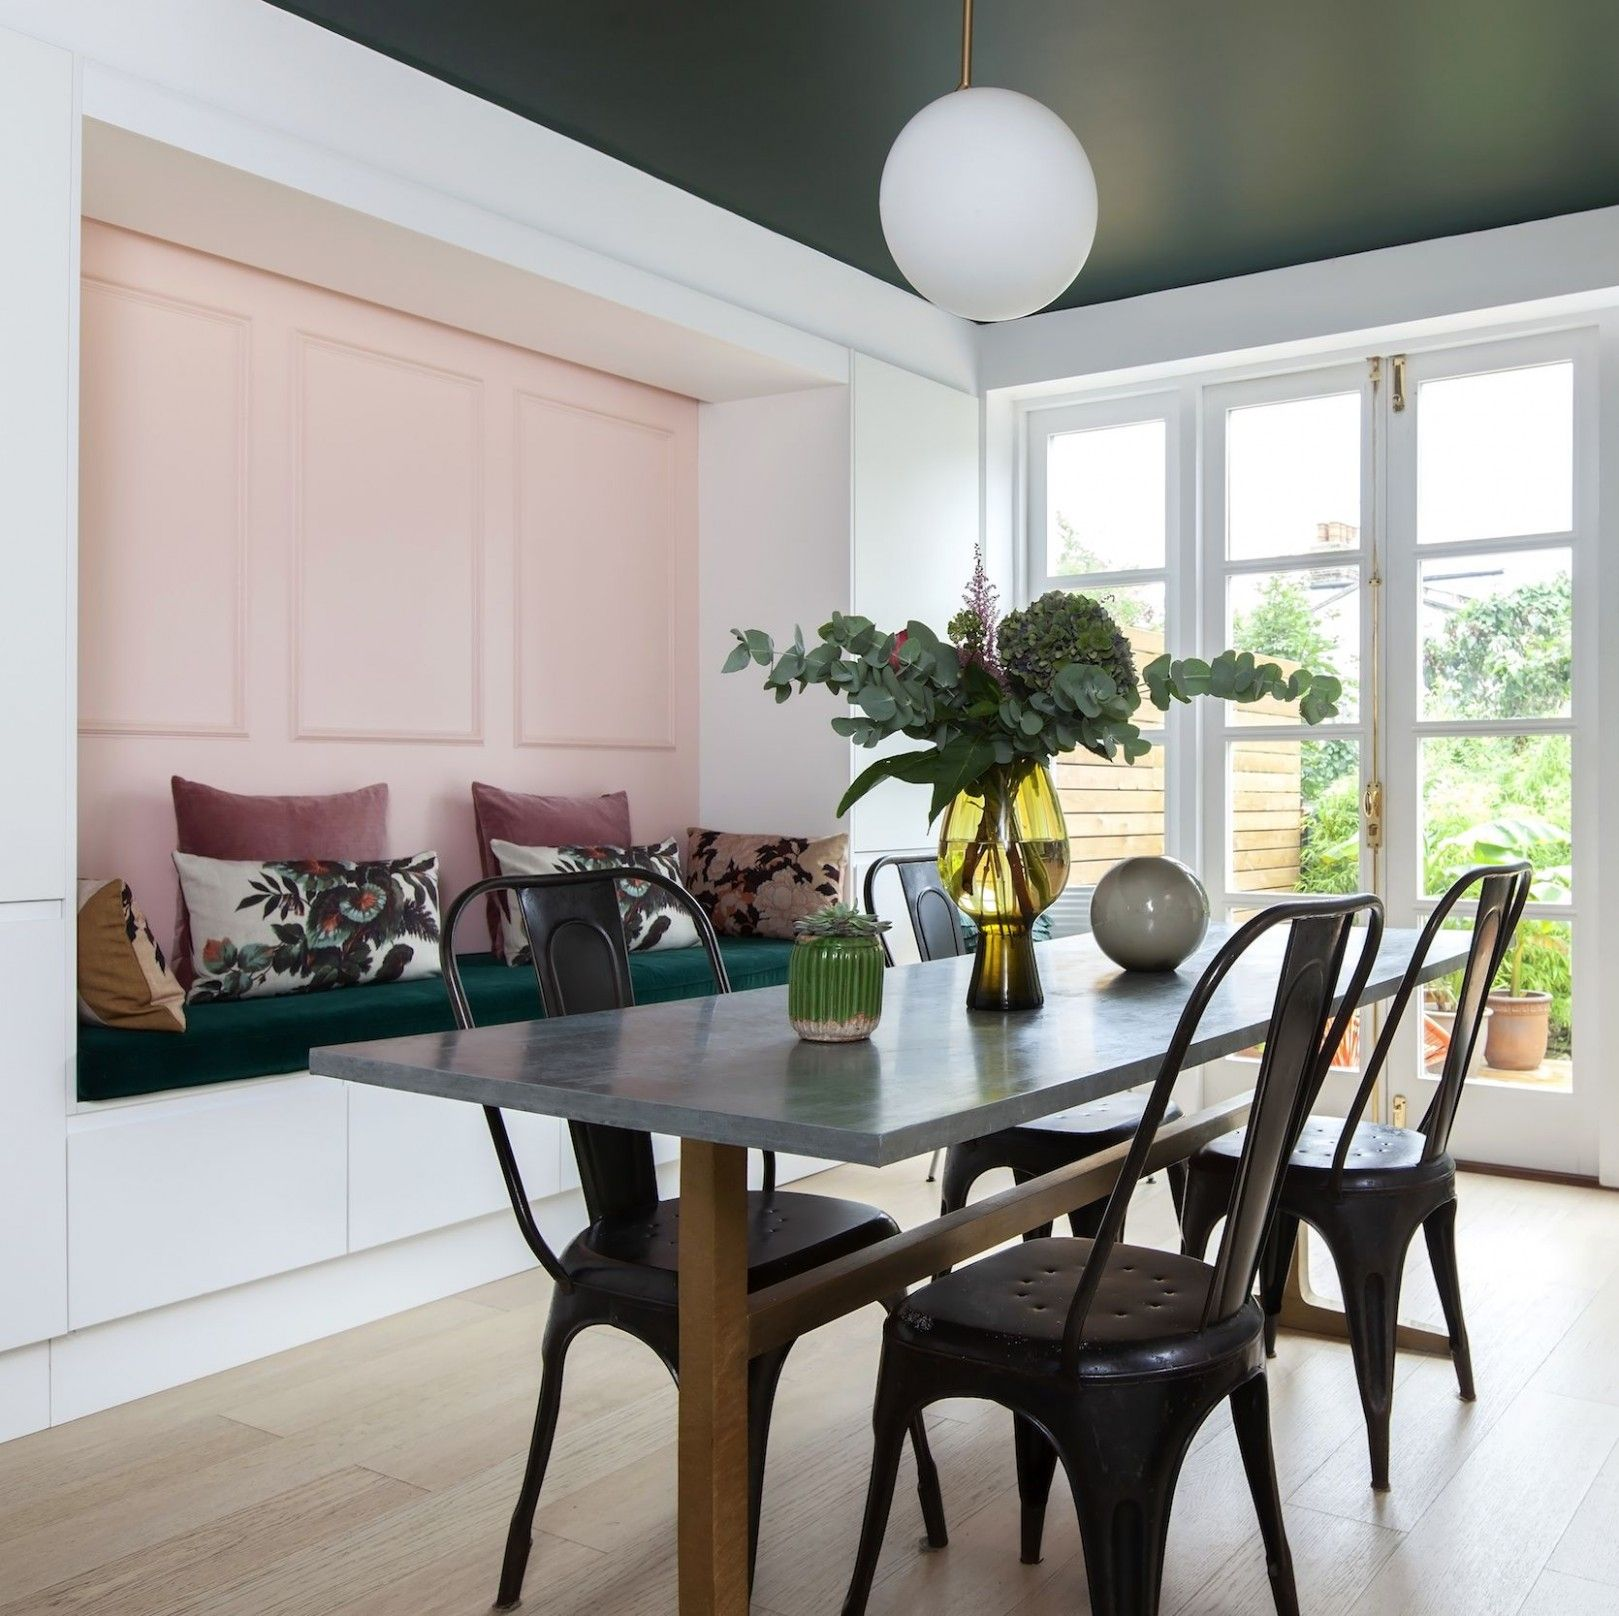 14 Well Formed Kitchen Diner Living Room Ideas In 2021 Dining Room Combo Built In Bench Seating Open Plan Kitchen Diner